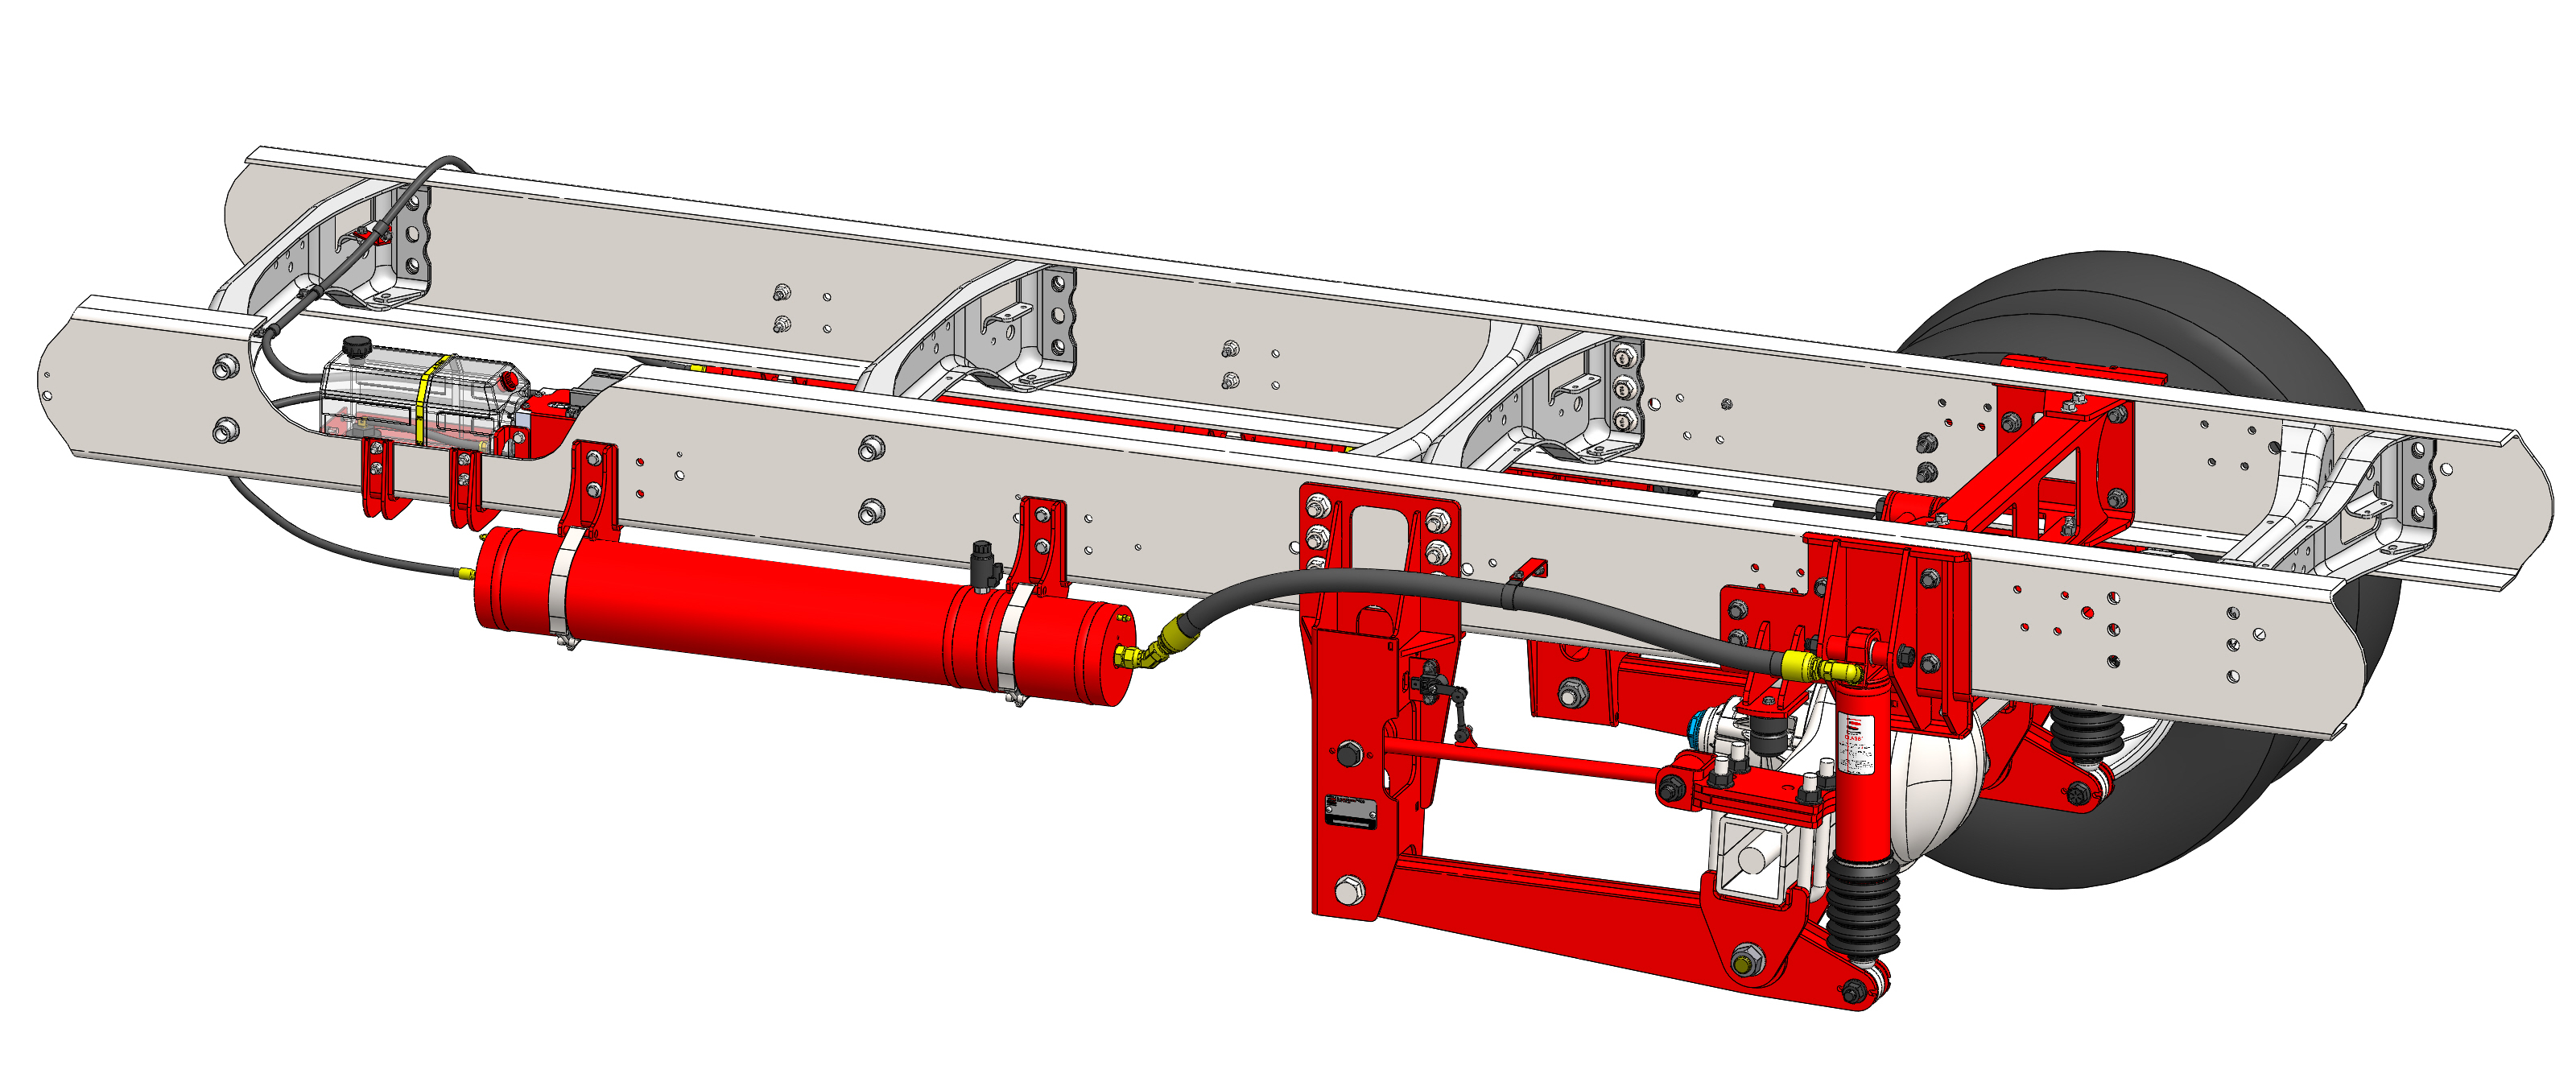 Ford F-650 Straight Rail Suspension System for buses.